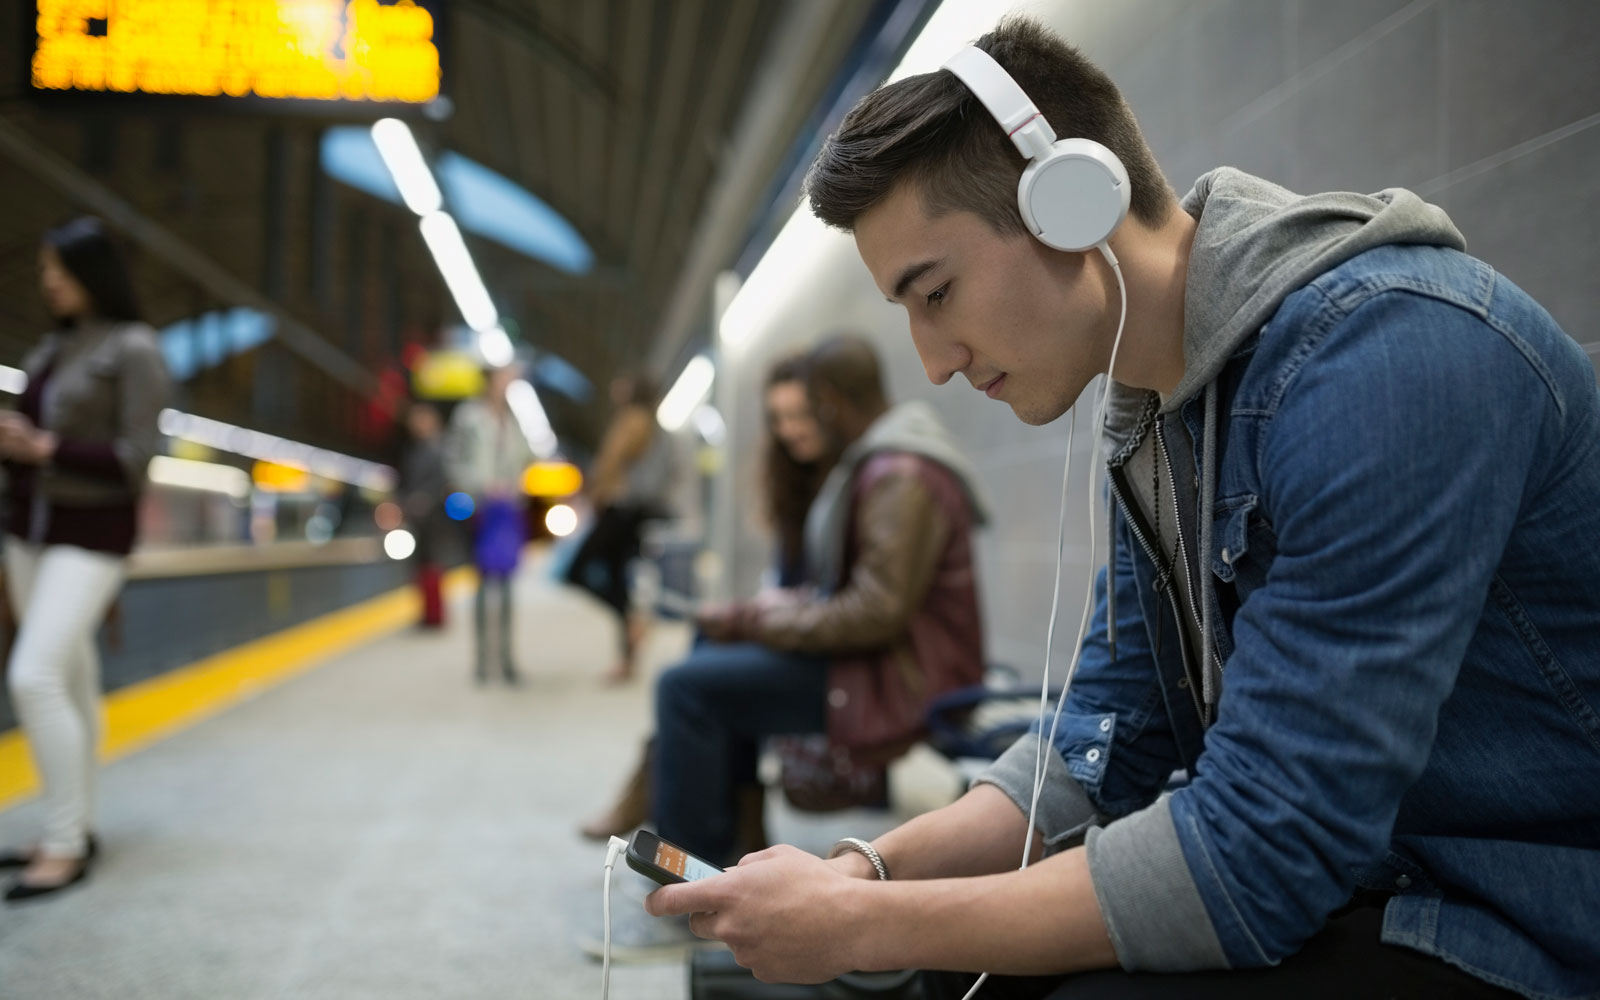 The Playlist You Should to Listen to Depending on the City You're Visiting | Travel + Leisure